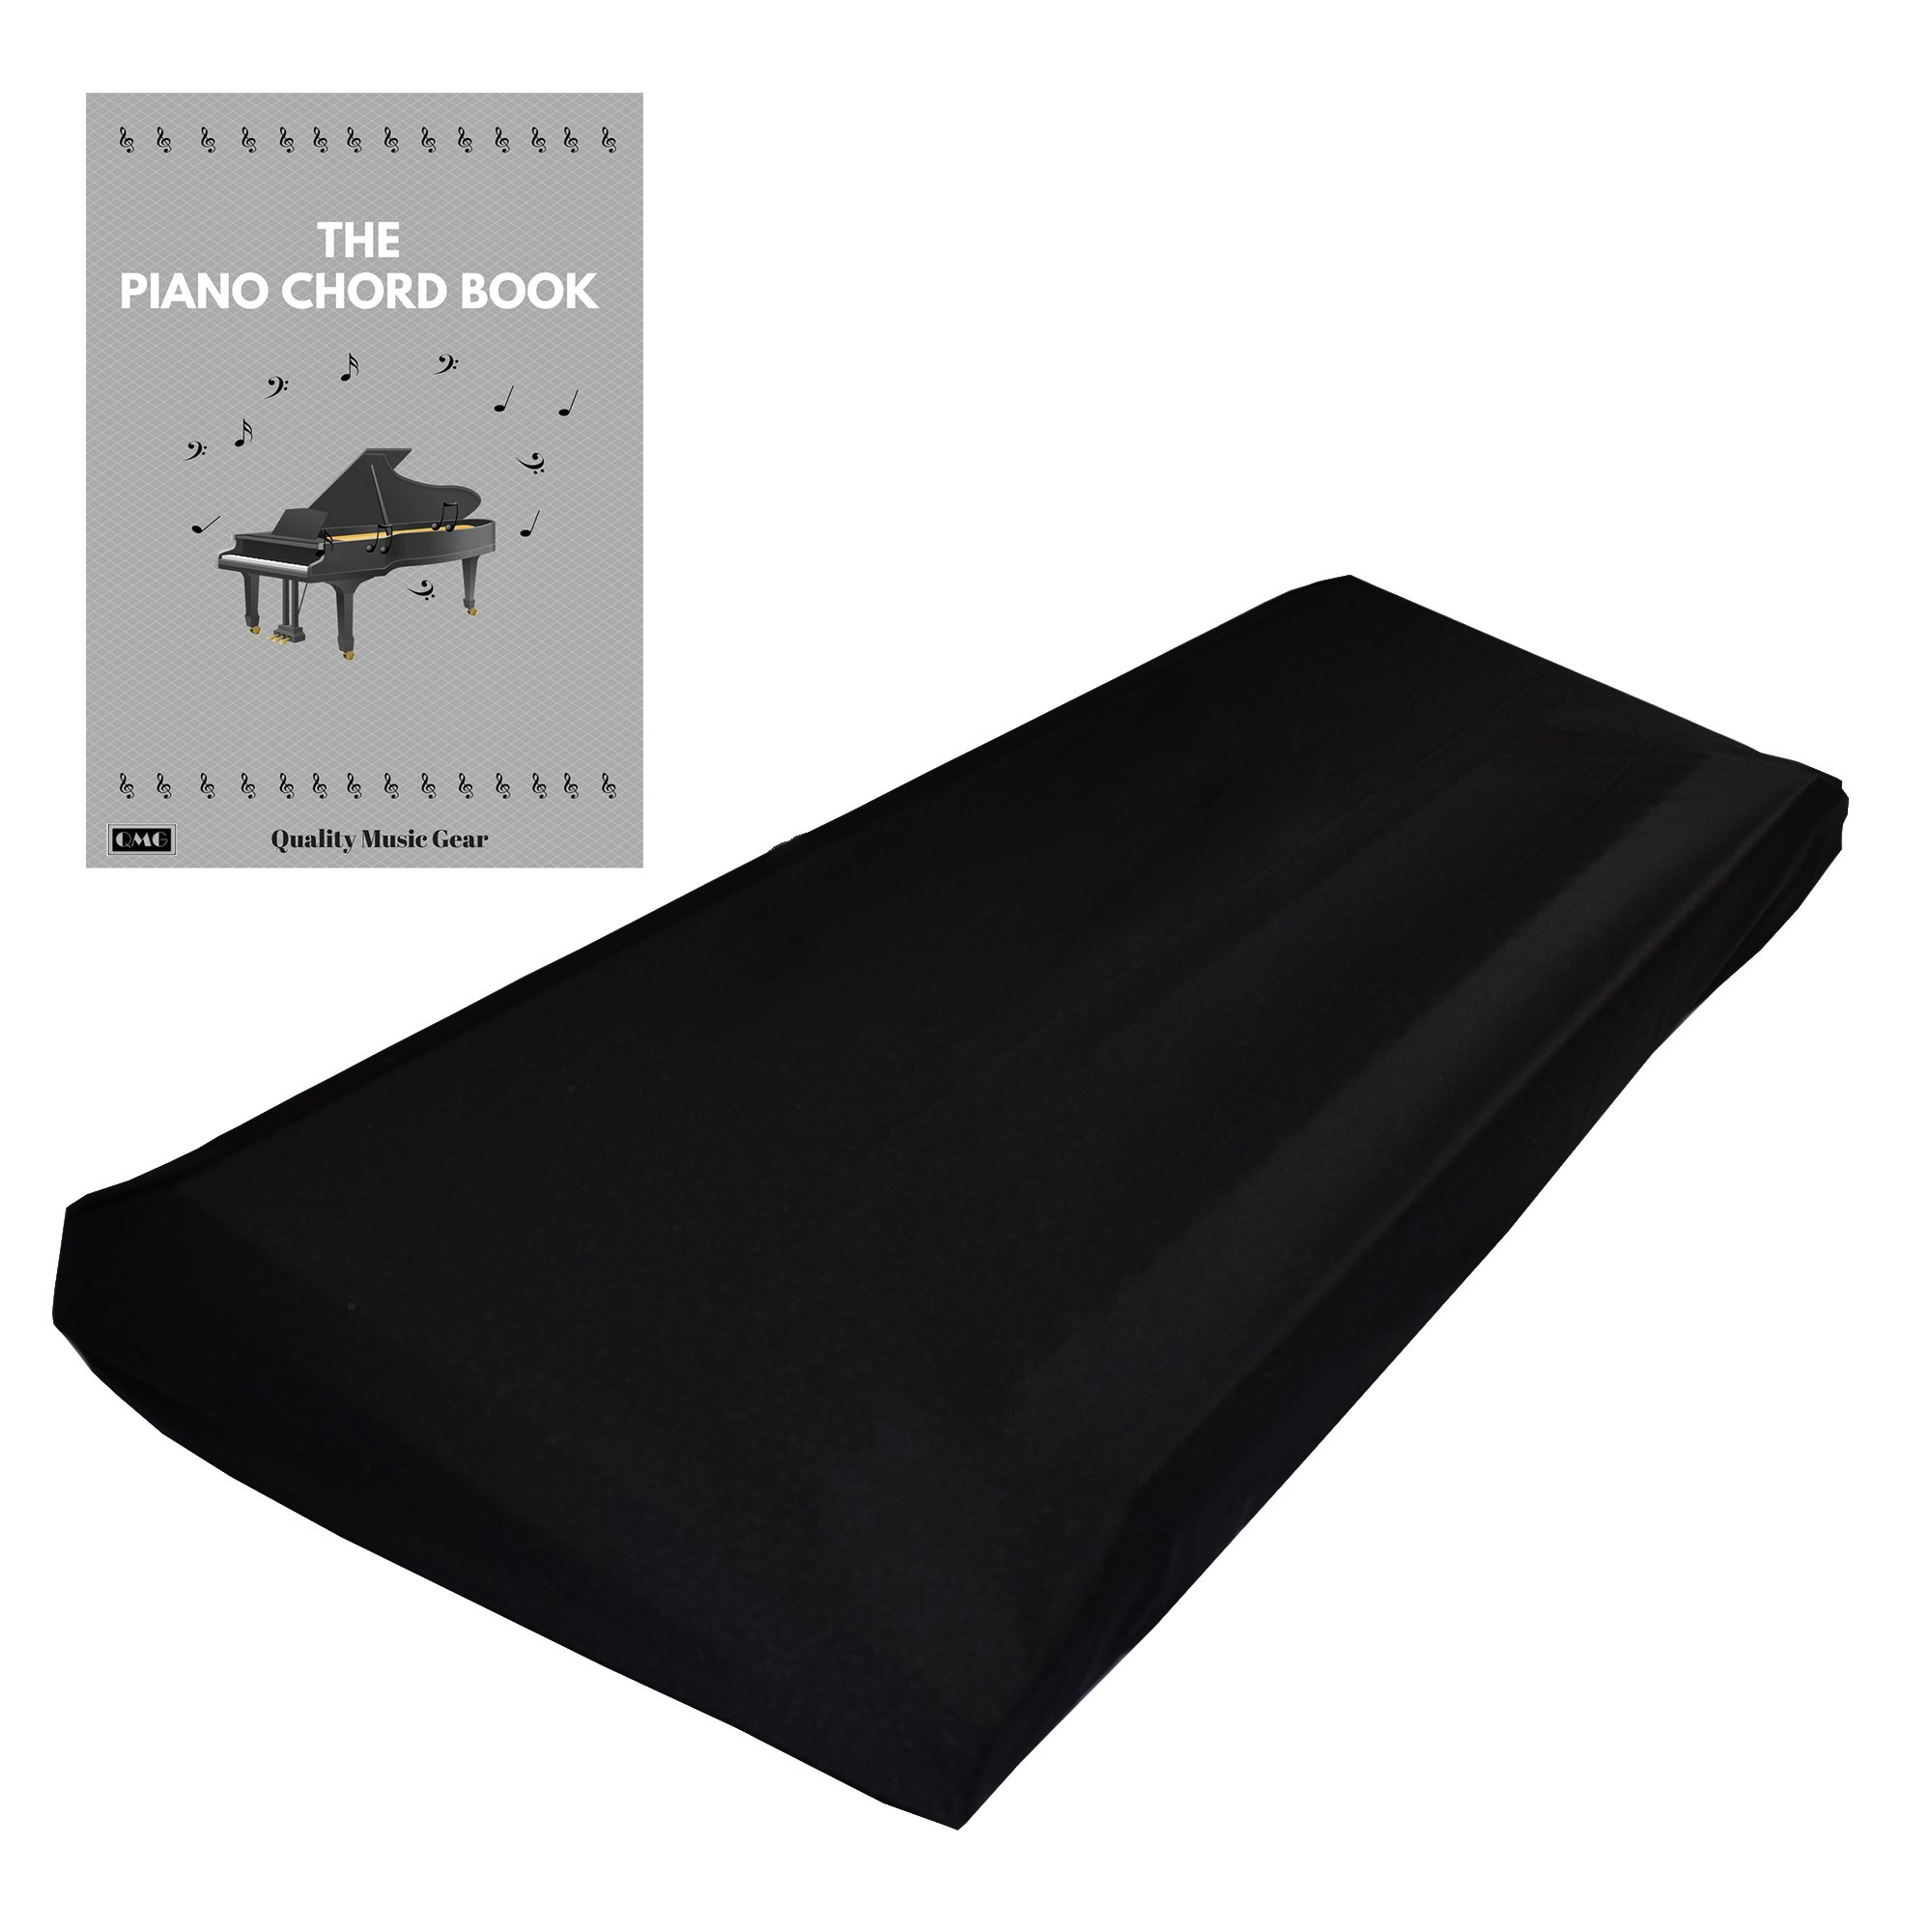 """Stretchable Keyboard Dust Cover for 61 & 76 Key-keyboard: Best for all Digital Pianos & Consoles – Adjustable Elastic Cord; Machine Washable – FREE Piano Chords Ebook – 41""""×16""""×6""""."""